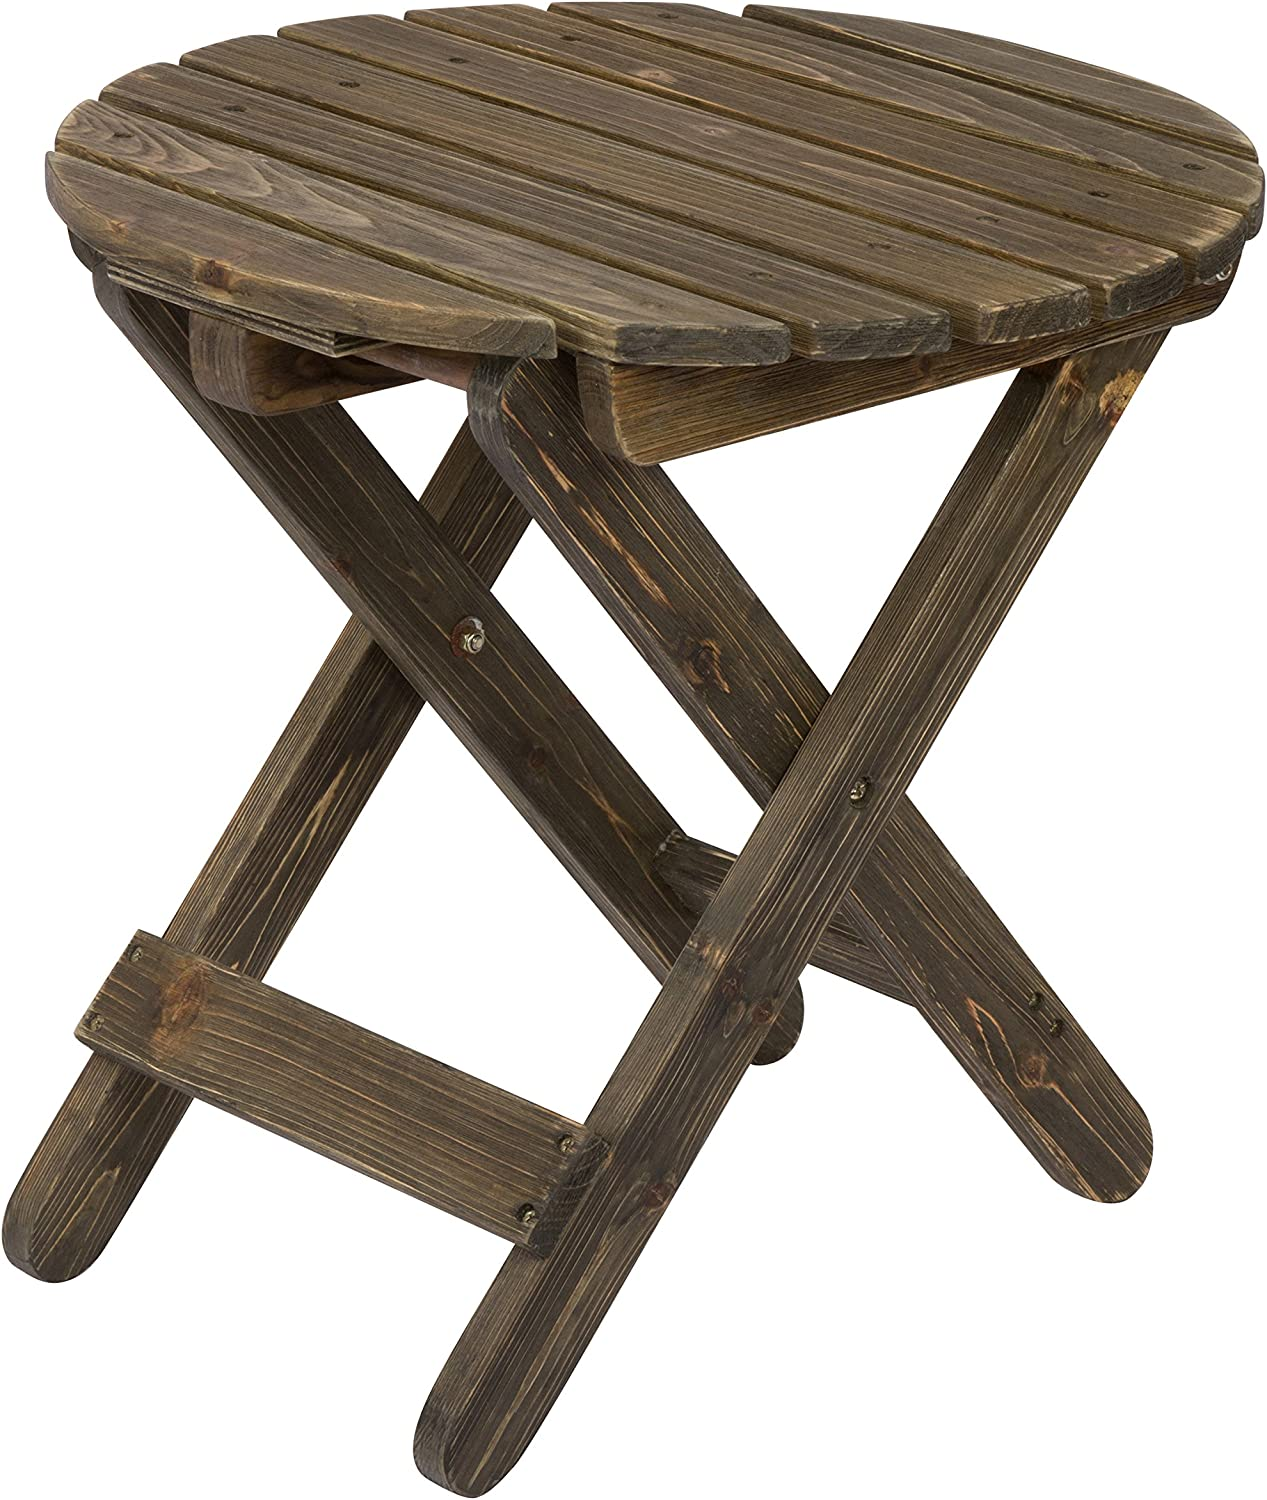 Shine Company Rustic Round Folding Table, Barnwood